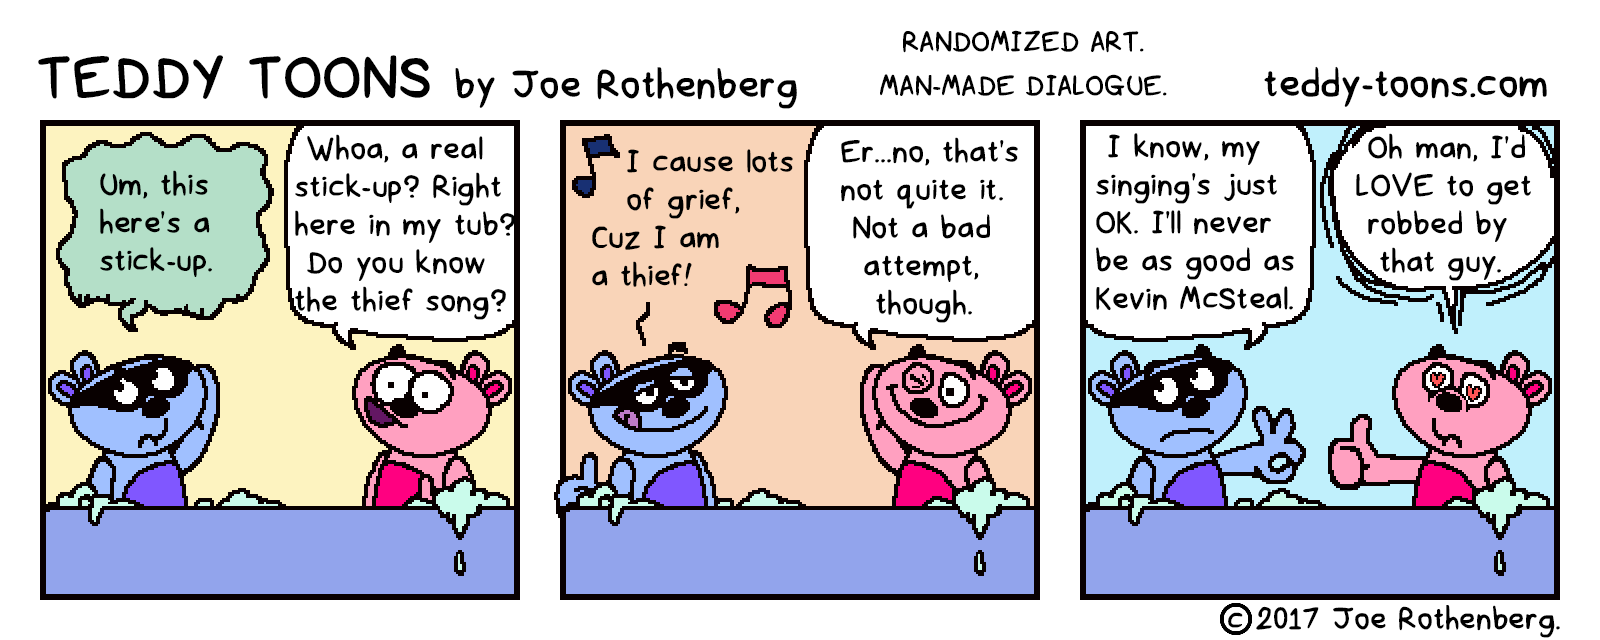 02-15-17.png